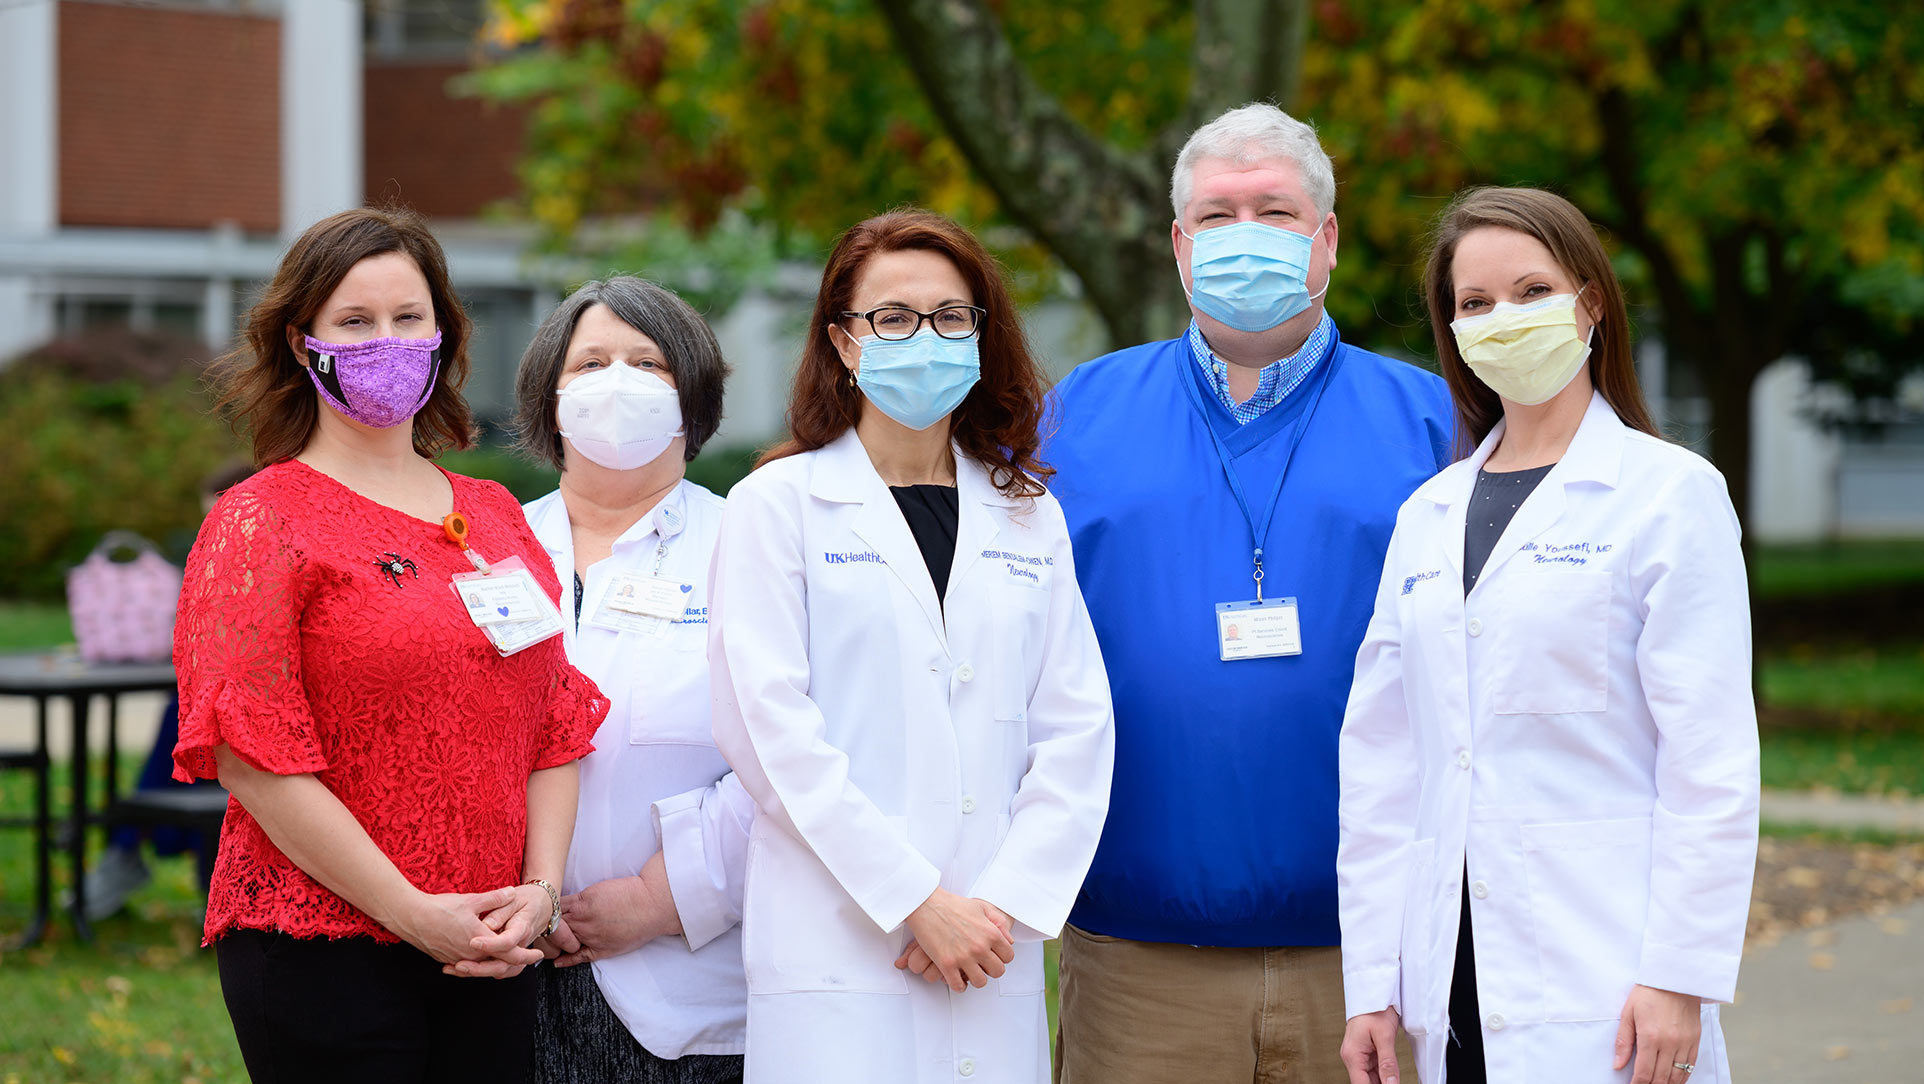 Dr Bensalem-Owen and four members of her team—three middle-aged white women and a middle aged white man—are standing in an outside area setting with their facemasks on.